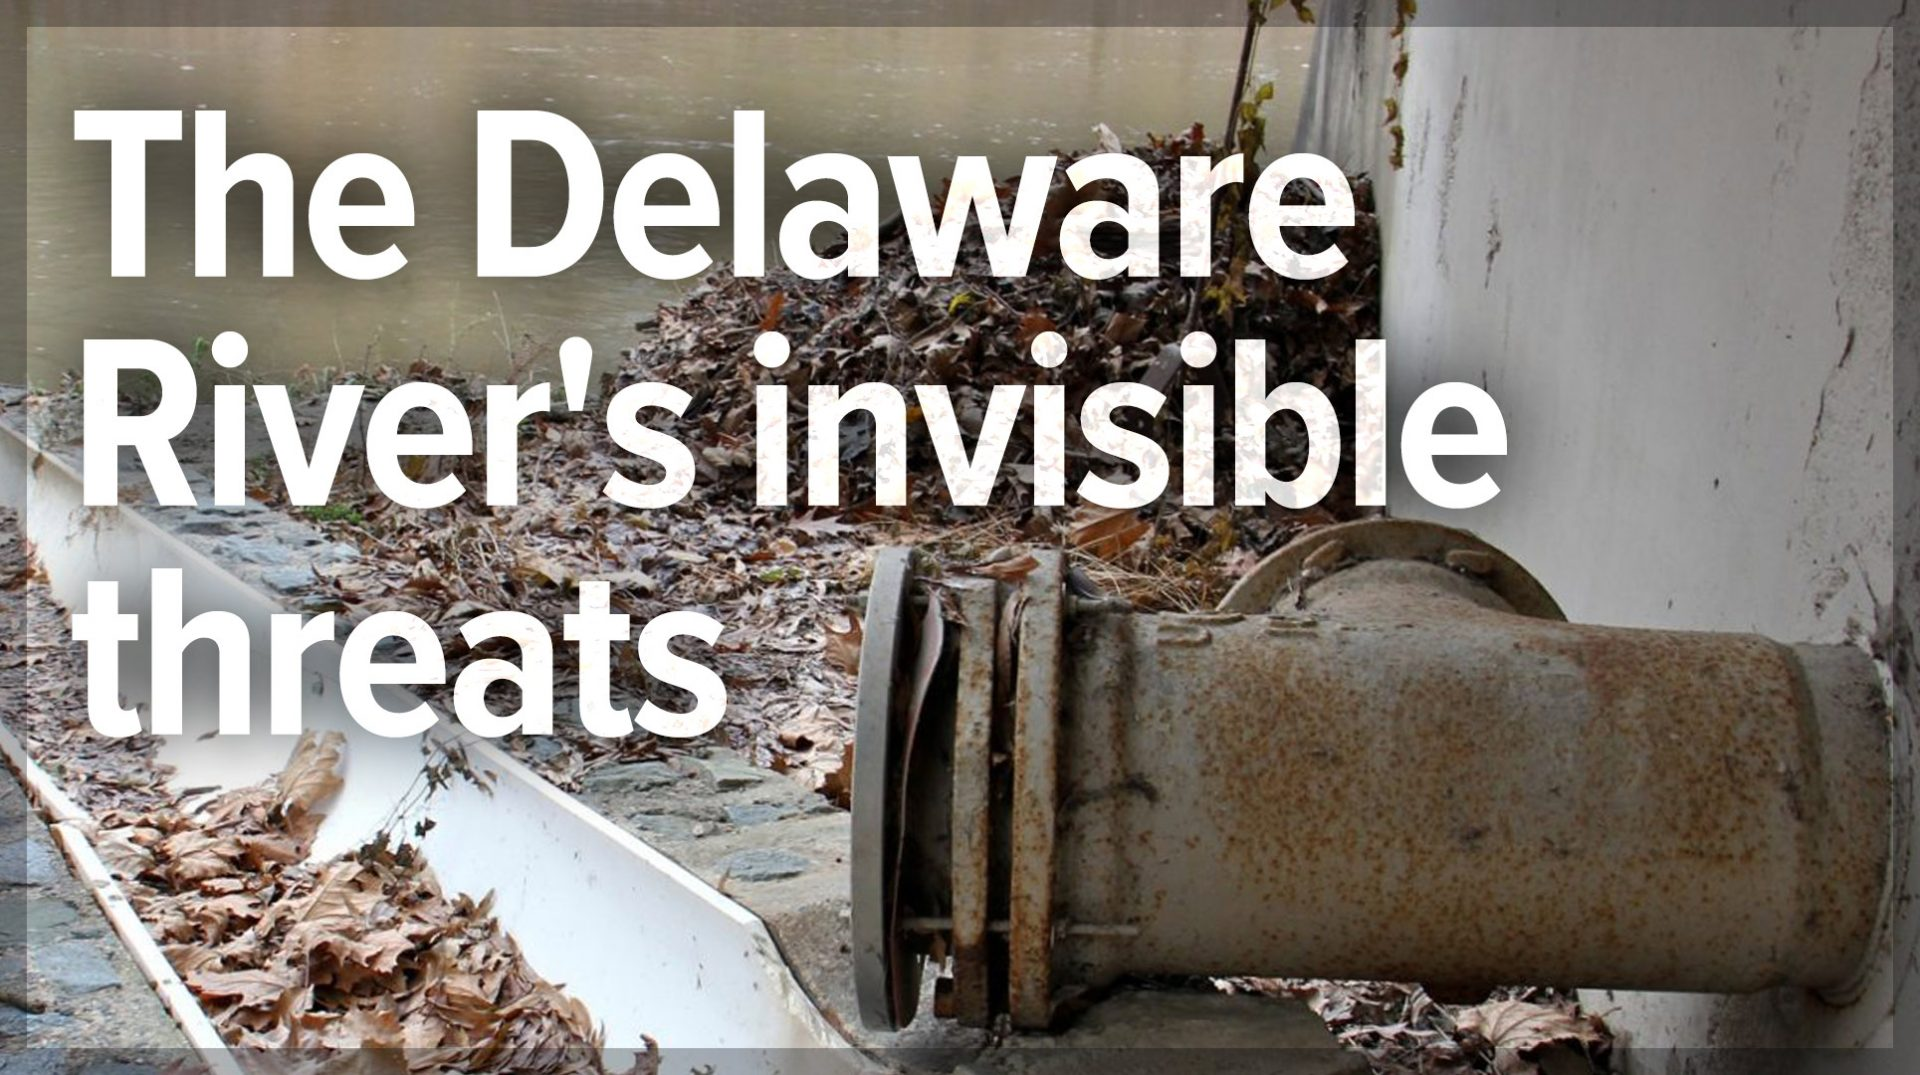 The Delaware River's invisible threats